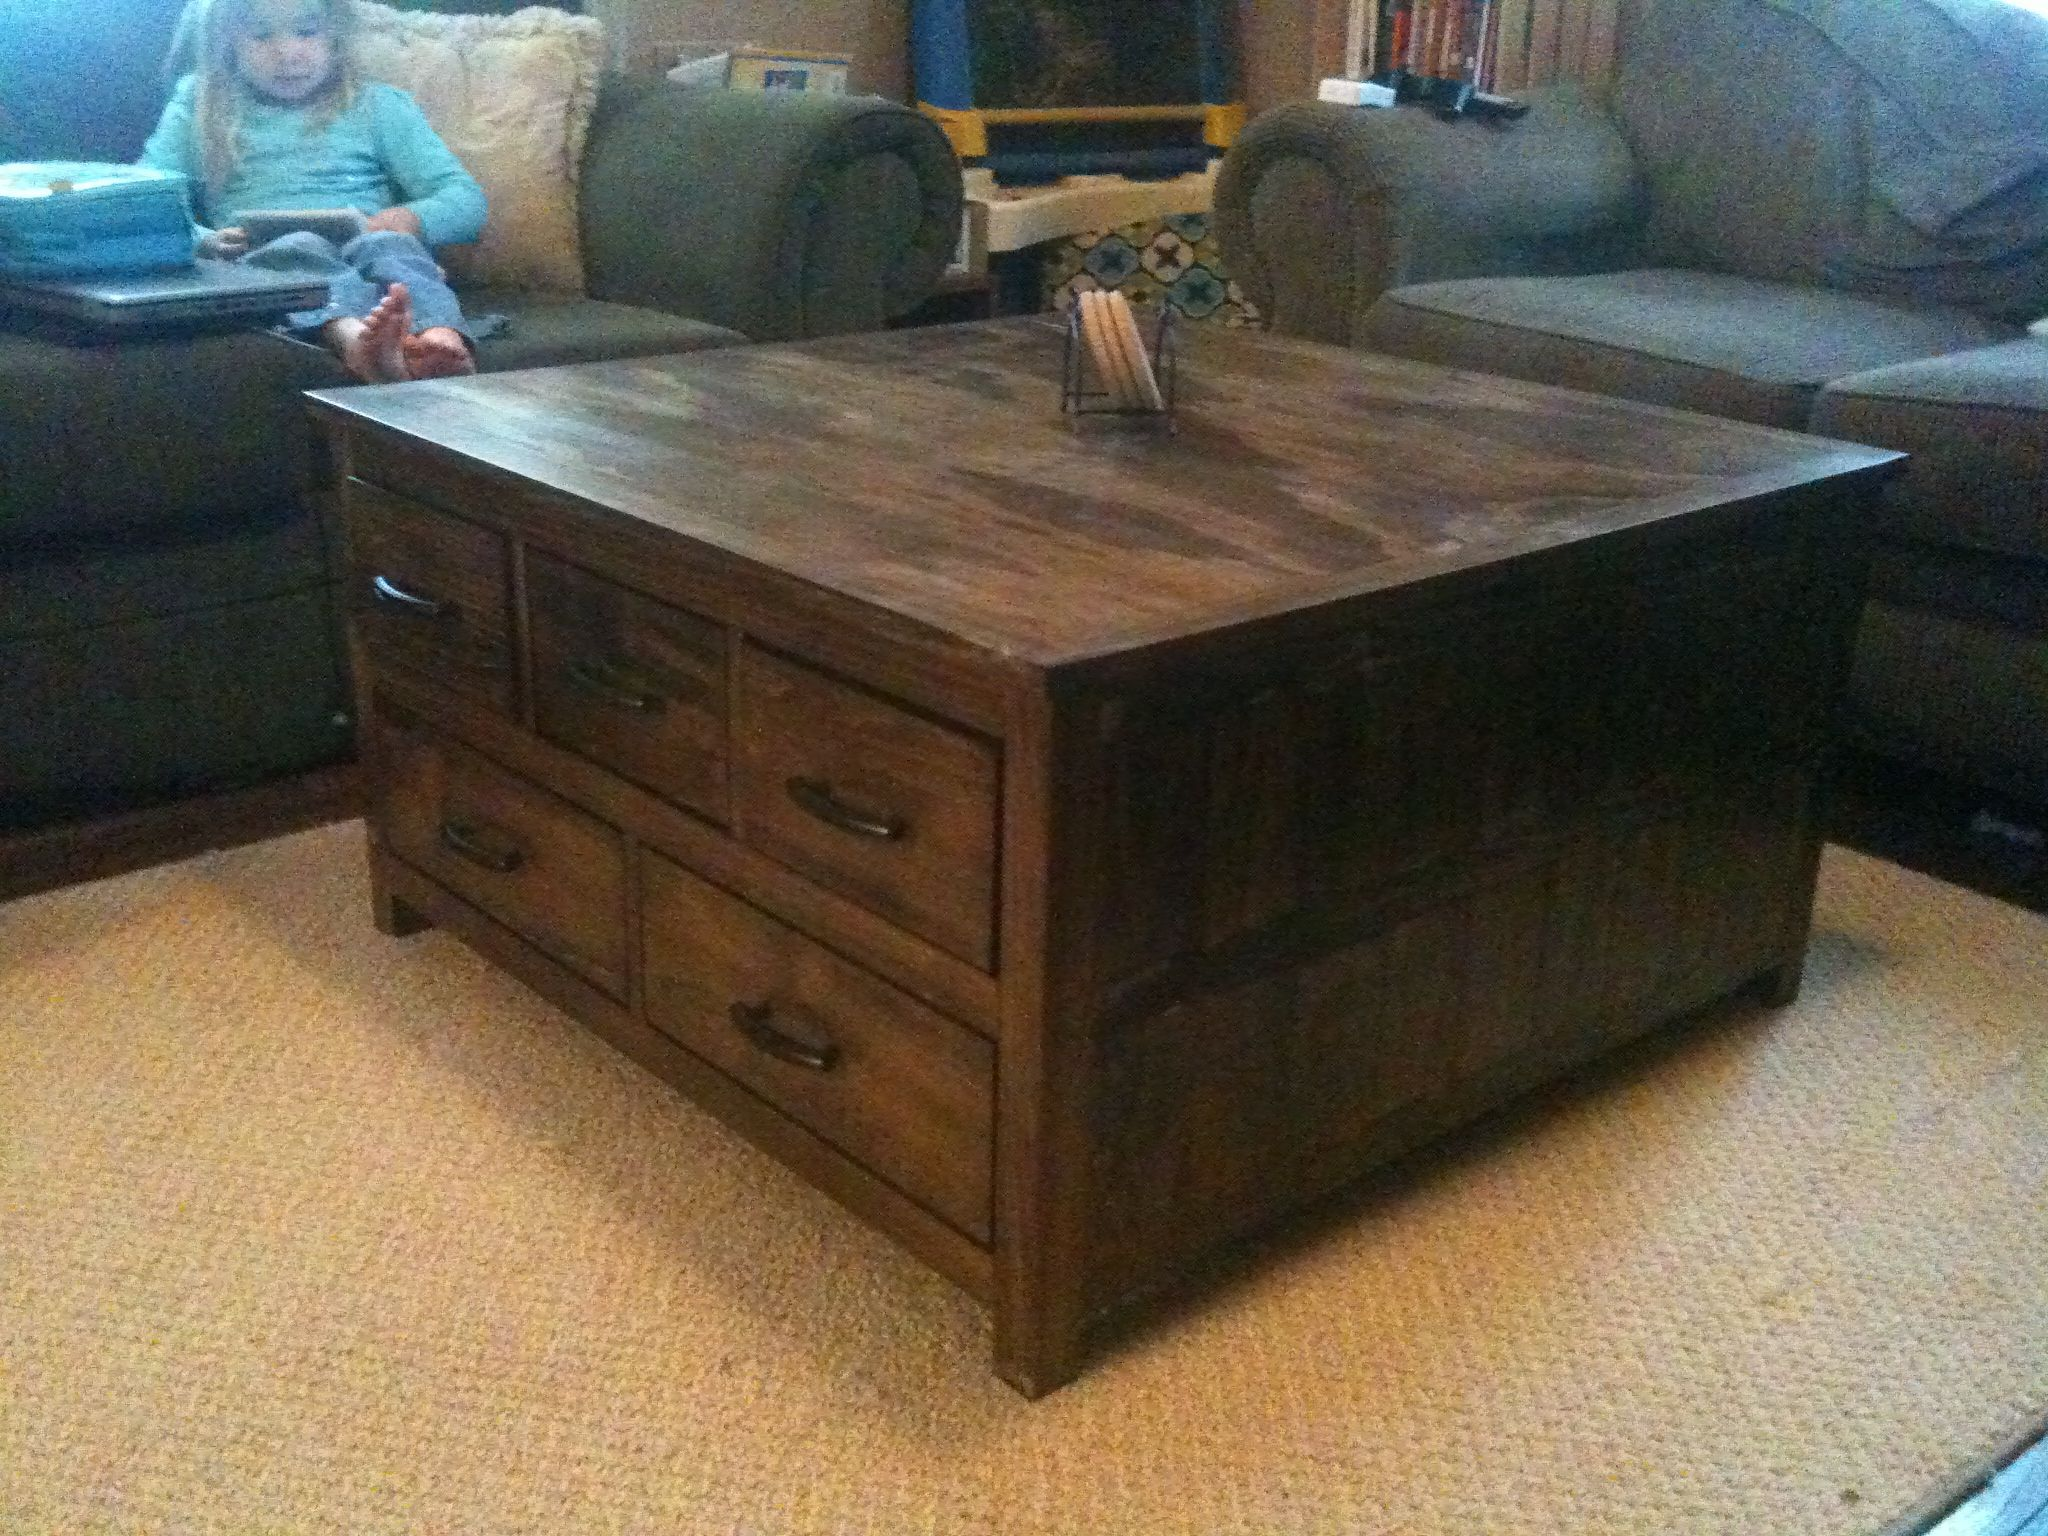 Square Coffee Table With Storage Storage Coffee Table Do It Yourself Home Projects Fro Large Square Coffee Table Diy Storage Coffee Table Coffee Table Wood [ 1536 x 2048 Pixel ]